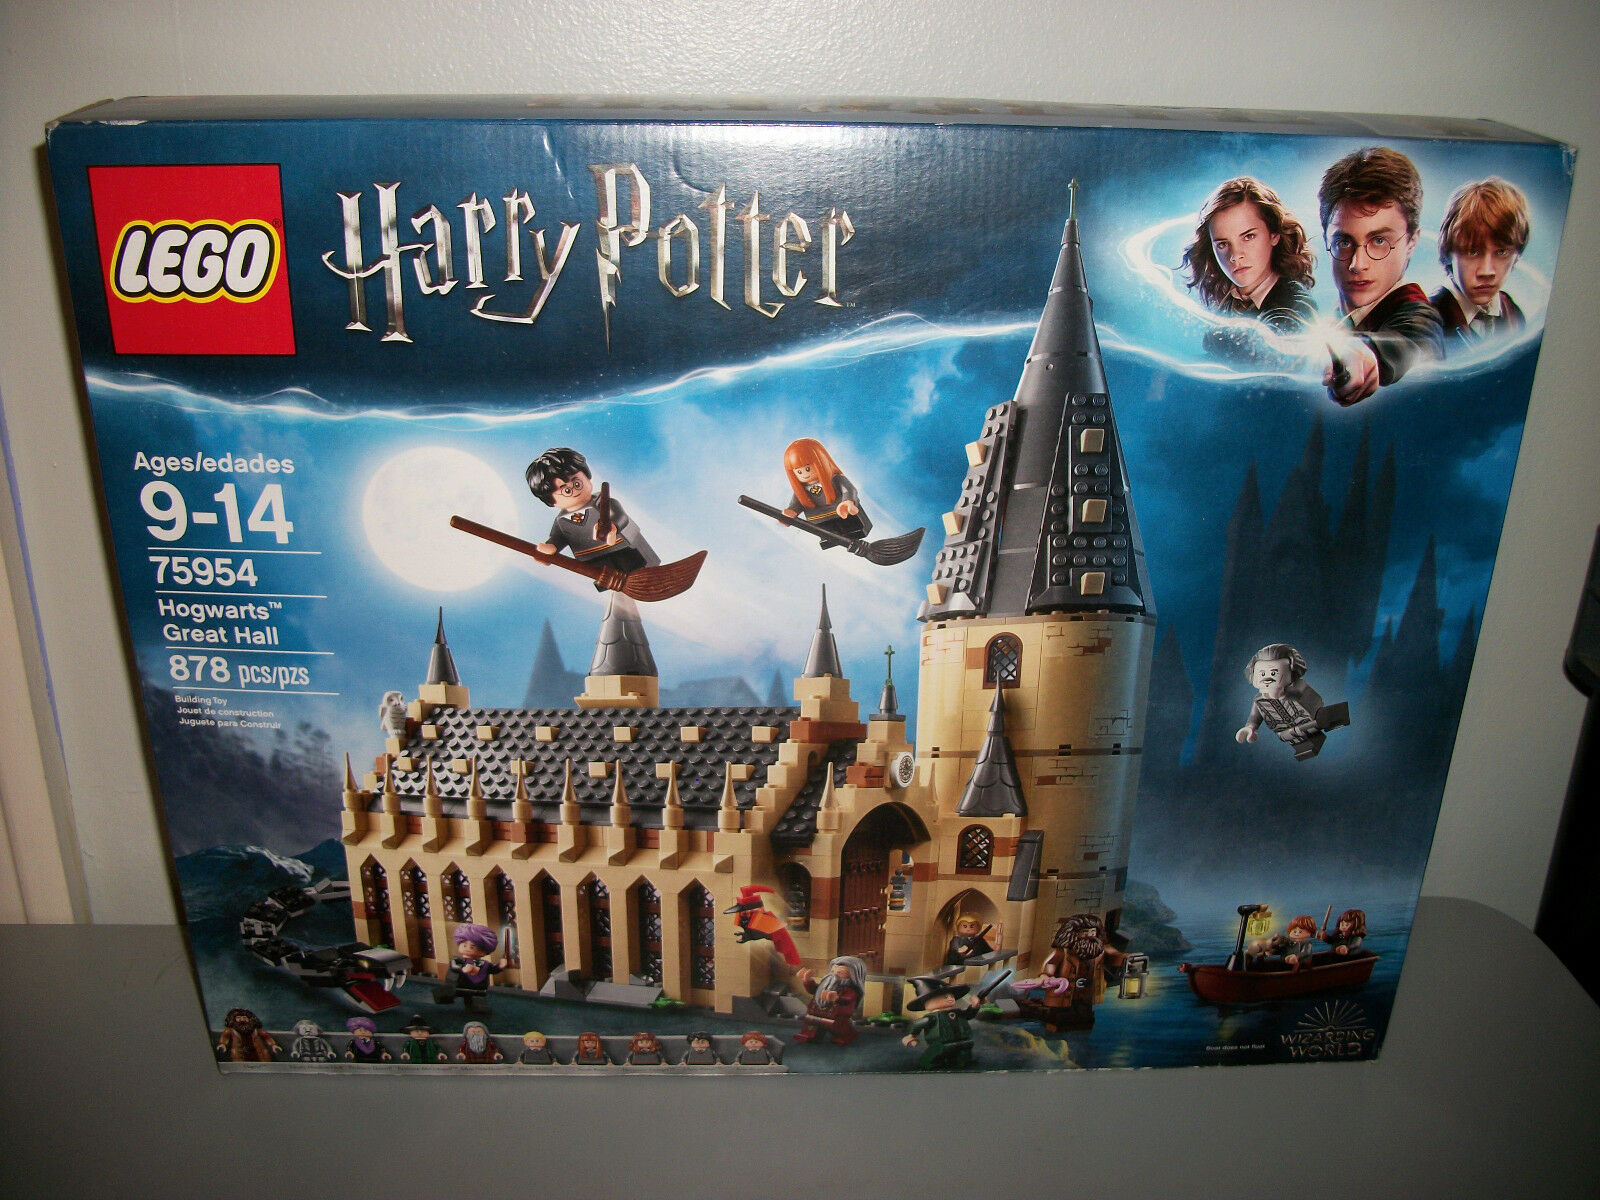 Lego Harry Potter 75954 Hogwarts Great Hall New Gift Toy Sea